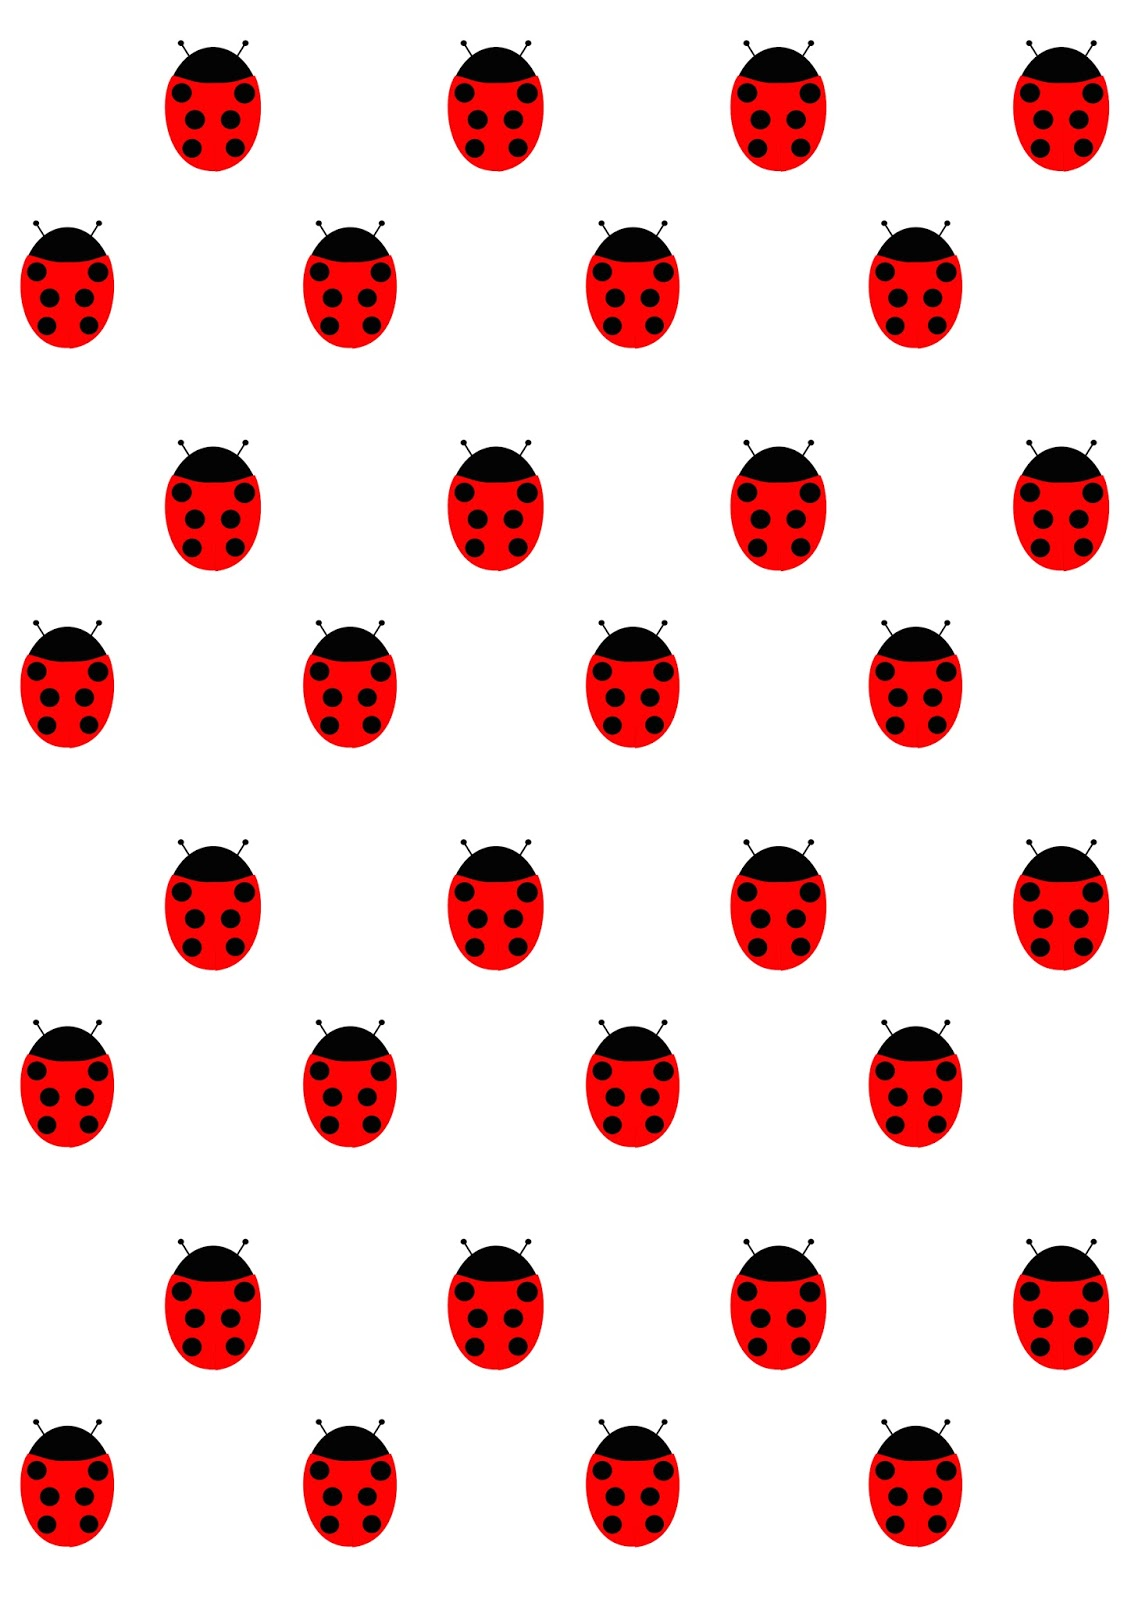 FREE-printable-ladybug-pattern-paper-cute-nursery-and-baby-shower-pattern-^^-wallpaper-wp3005880